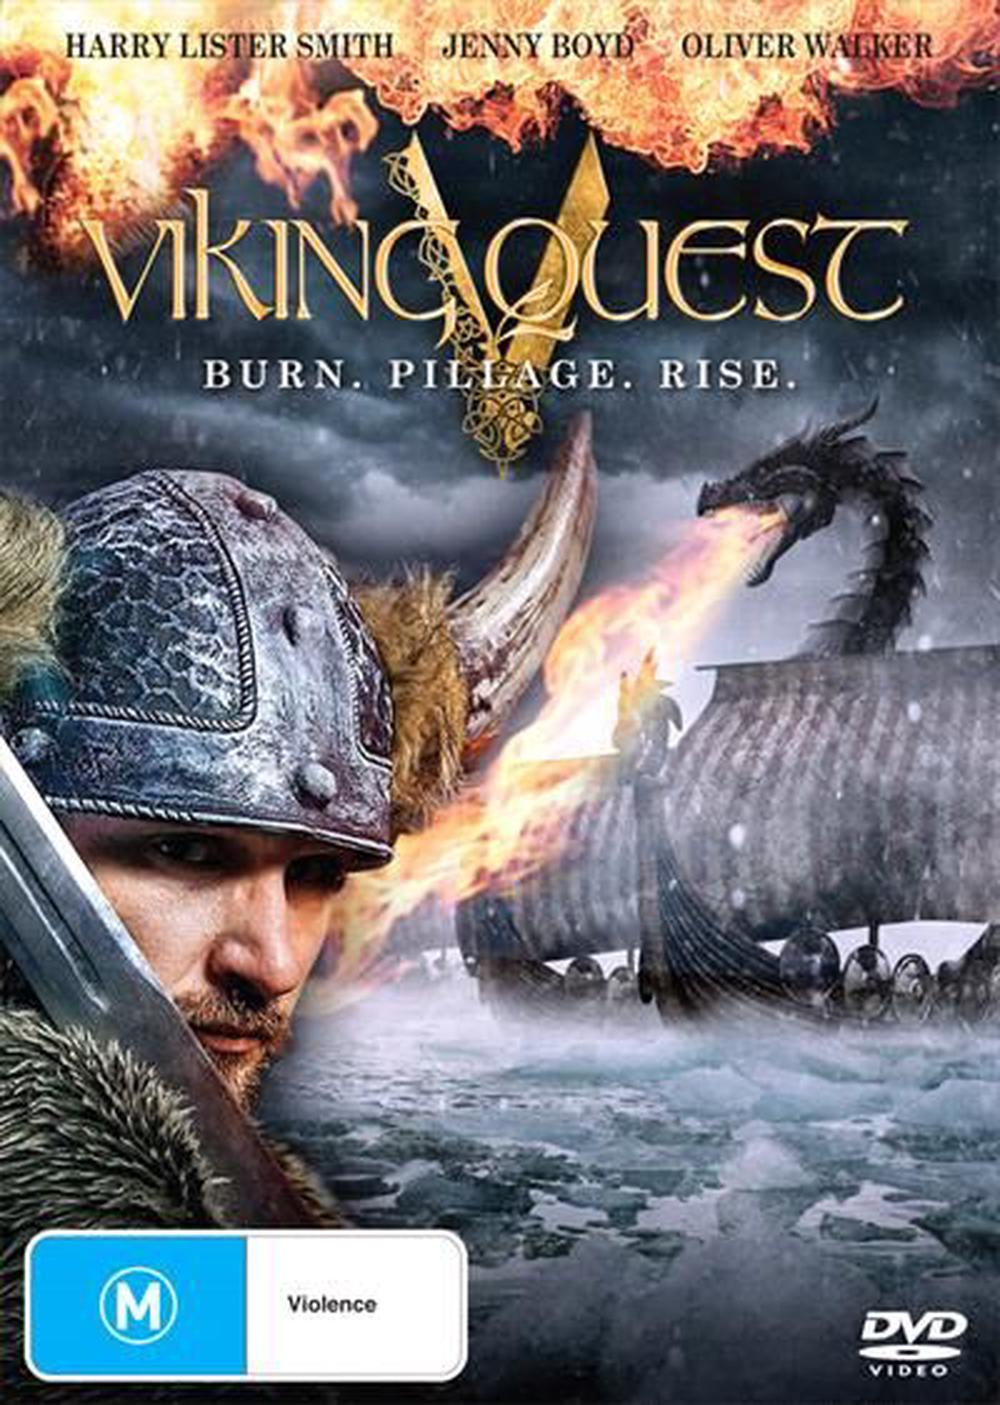 Viking Quest, DVD | Buy online at The Nile